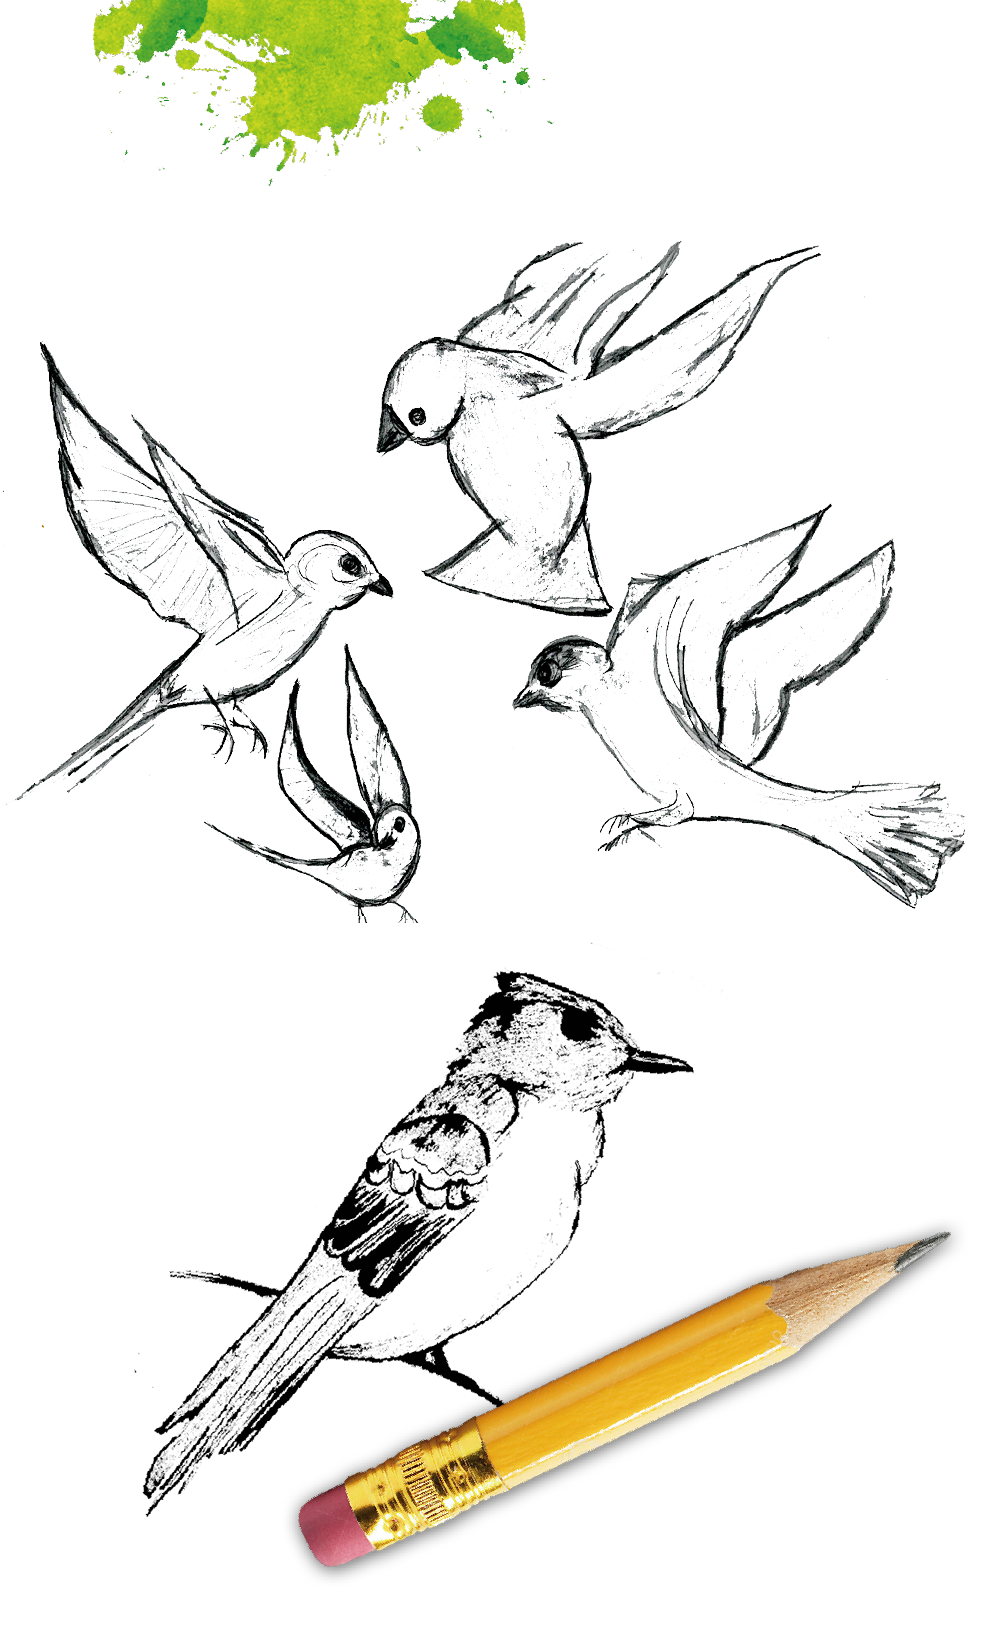 Bird Sketches By Zohra Lakhani | Creative Joys